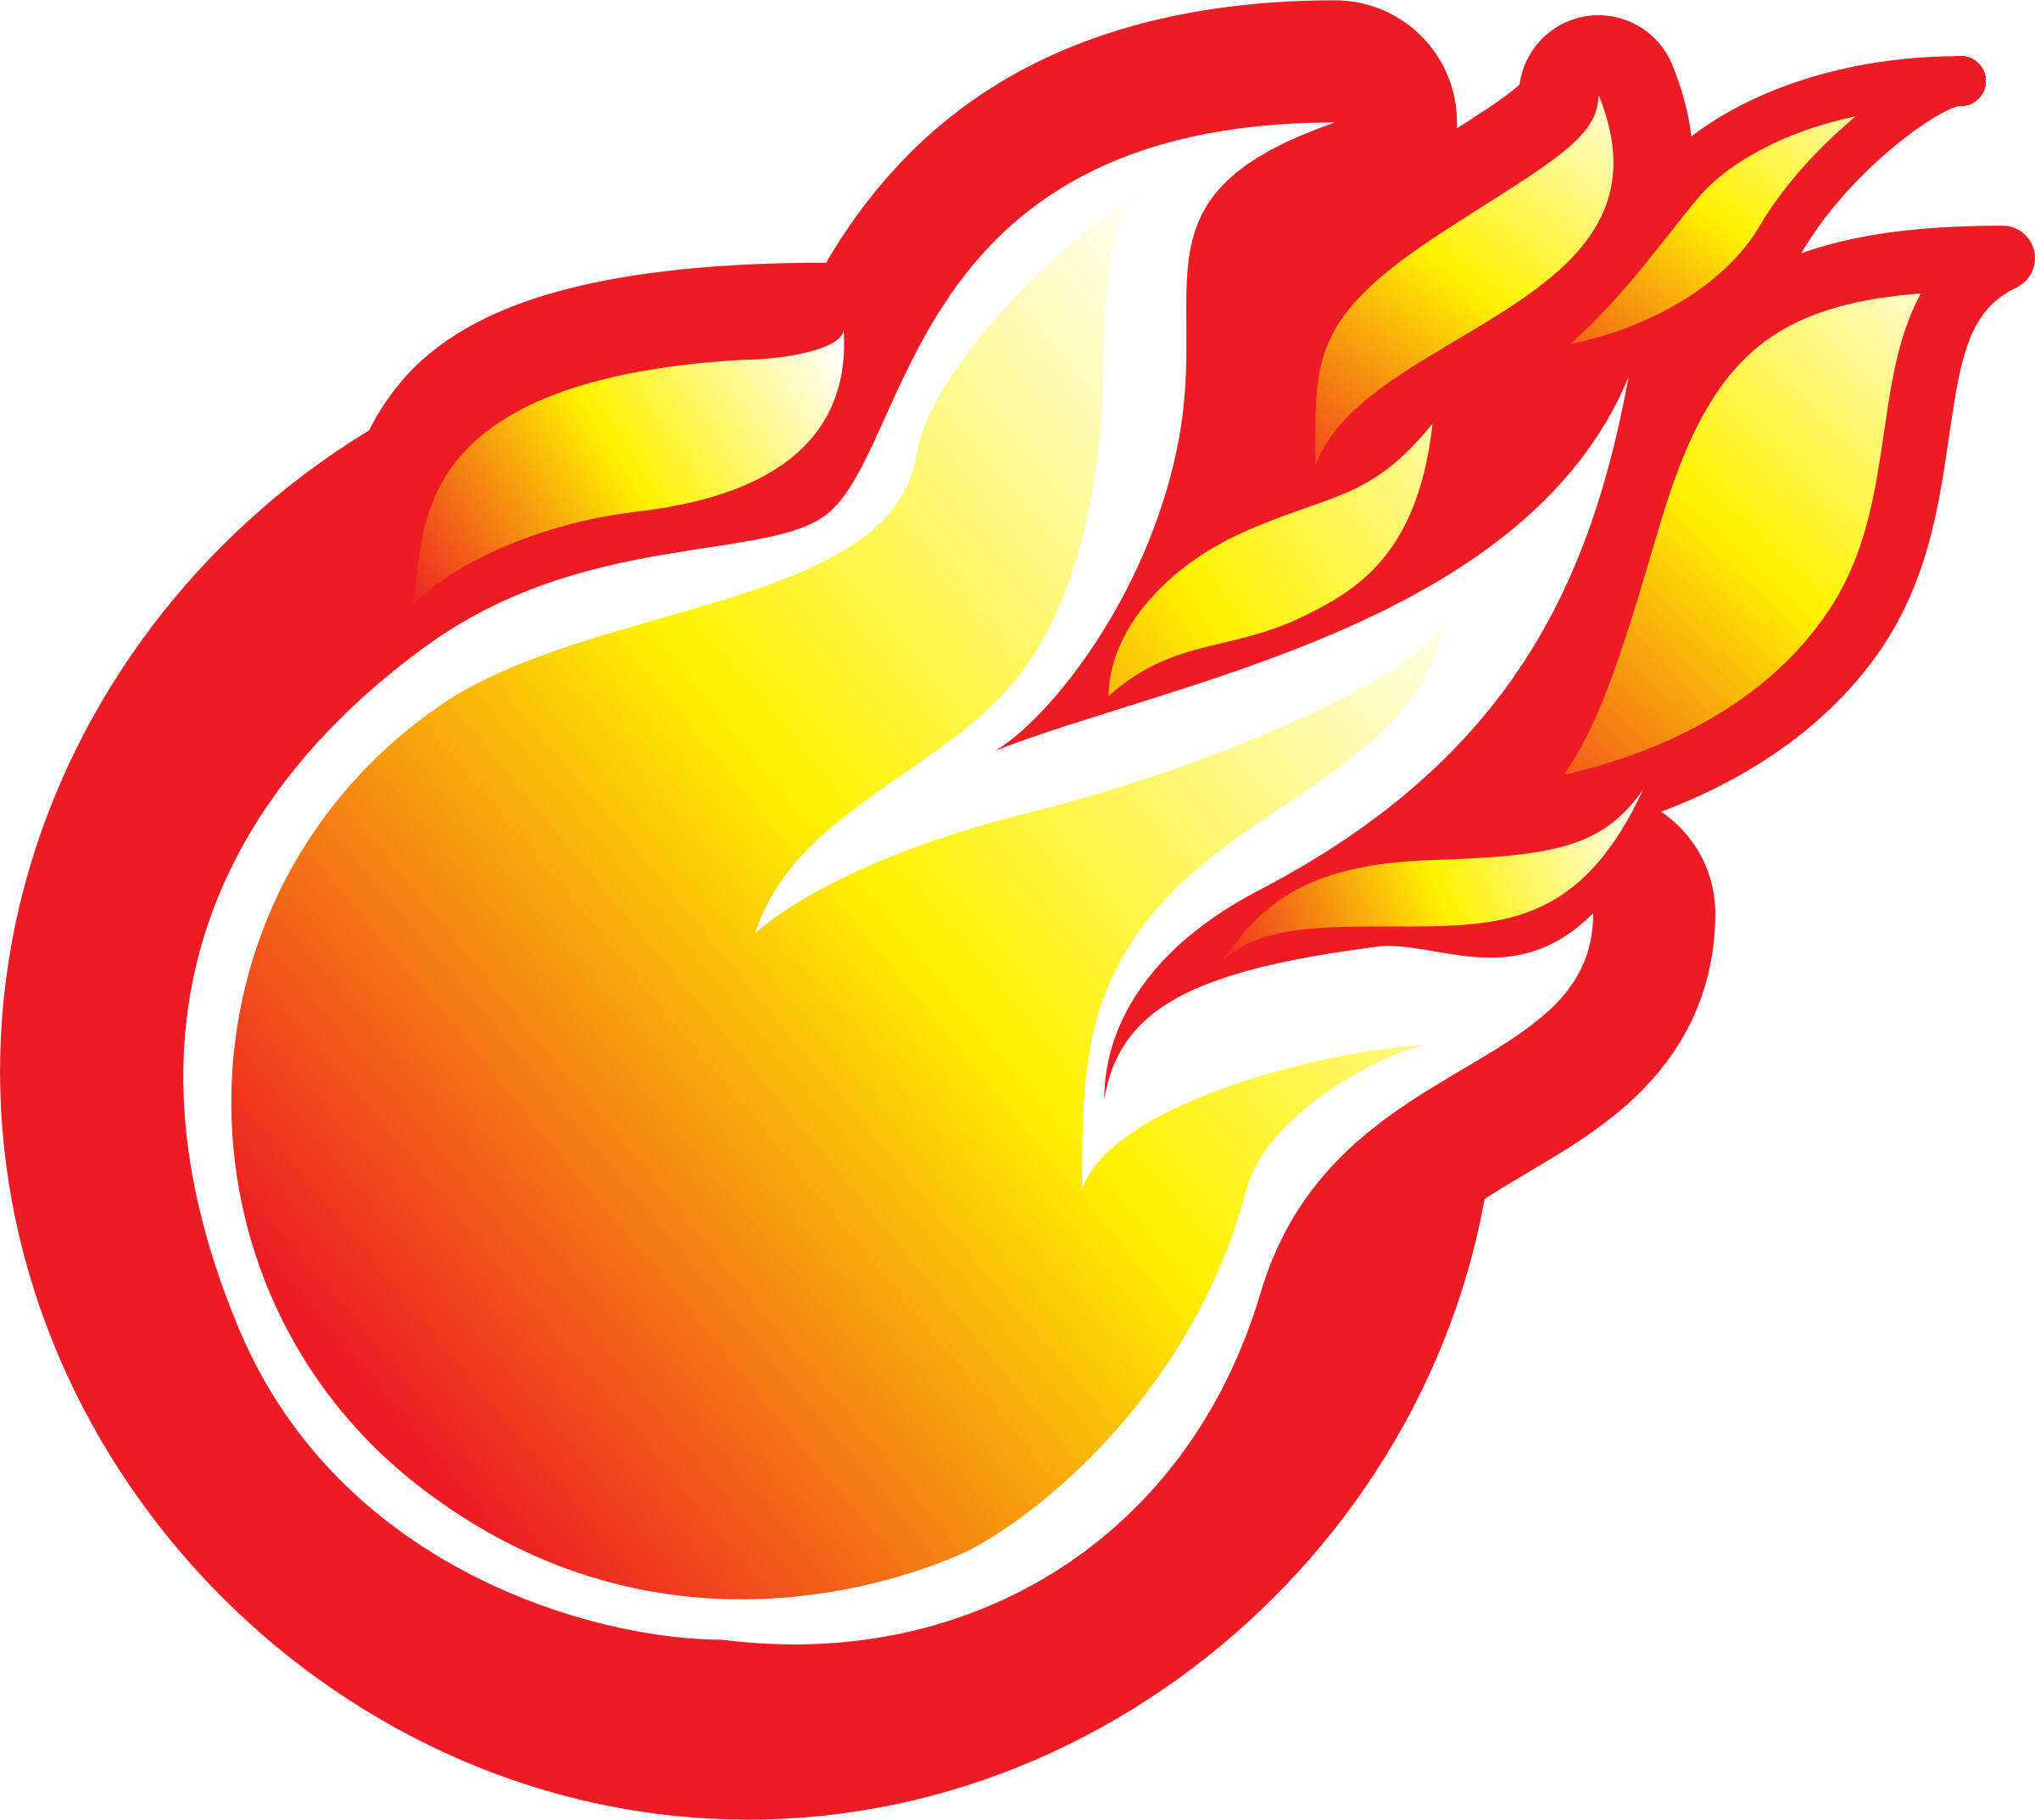 Flame logo clipart clipart transparent download Flame fire clipart 6 image #6980 | ruby logo inspiration | Free ... clipart transparent download